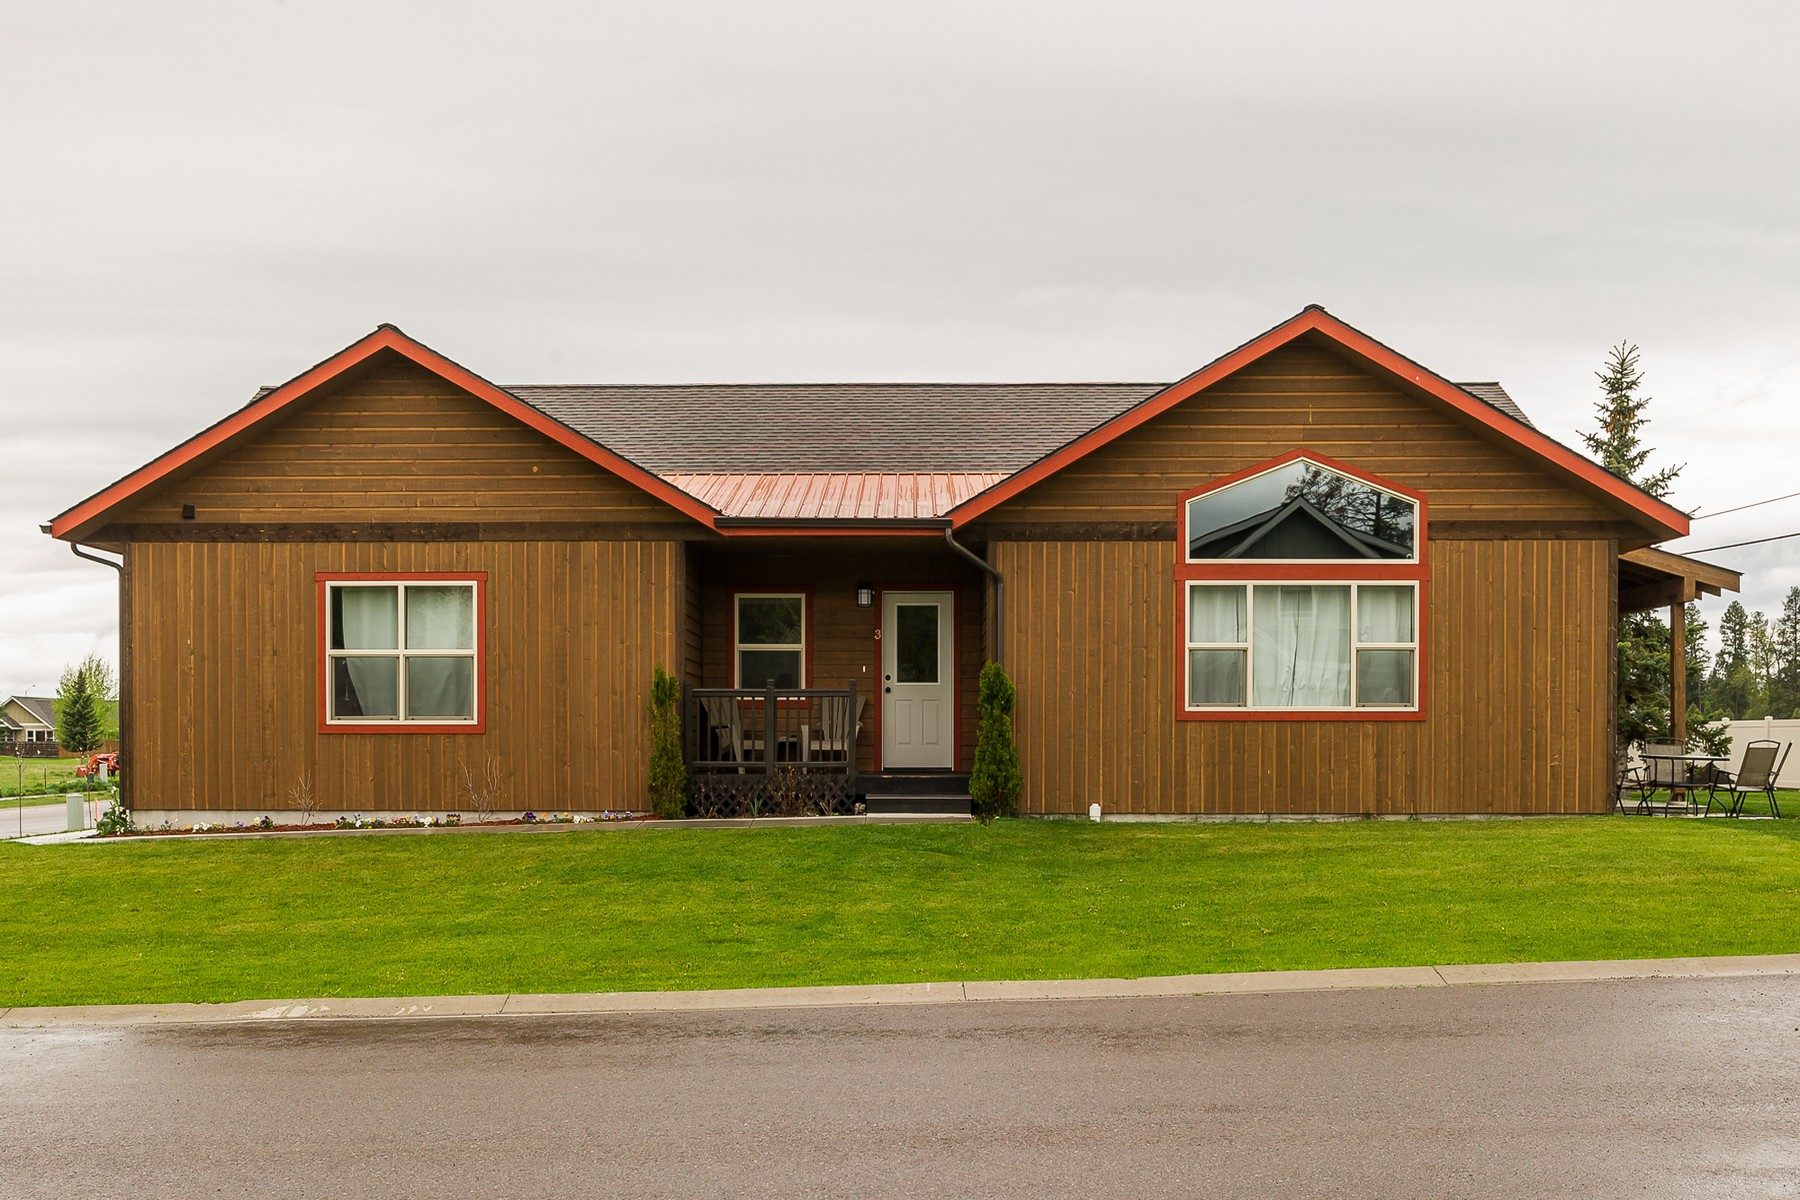 Single Family Home for Sale at 3 Hidden Cedar Loop , Columbia Falls, MT 59912 3 Hidden Cedar Loop Columbia Falls, Montana 59912 United States